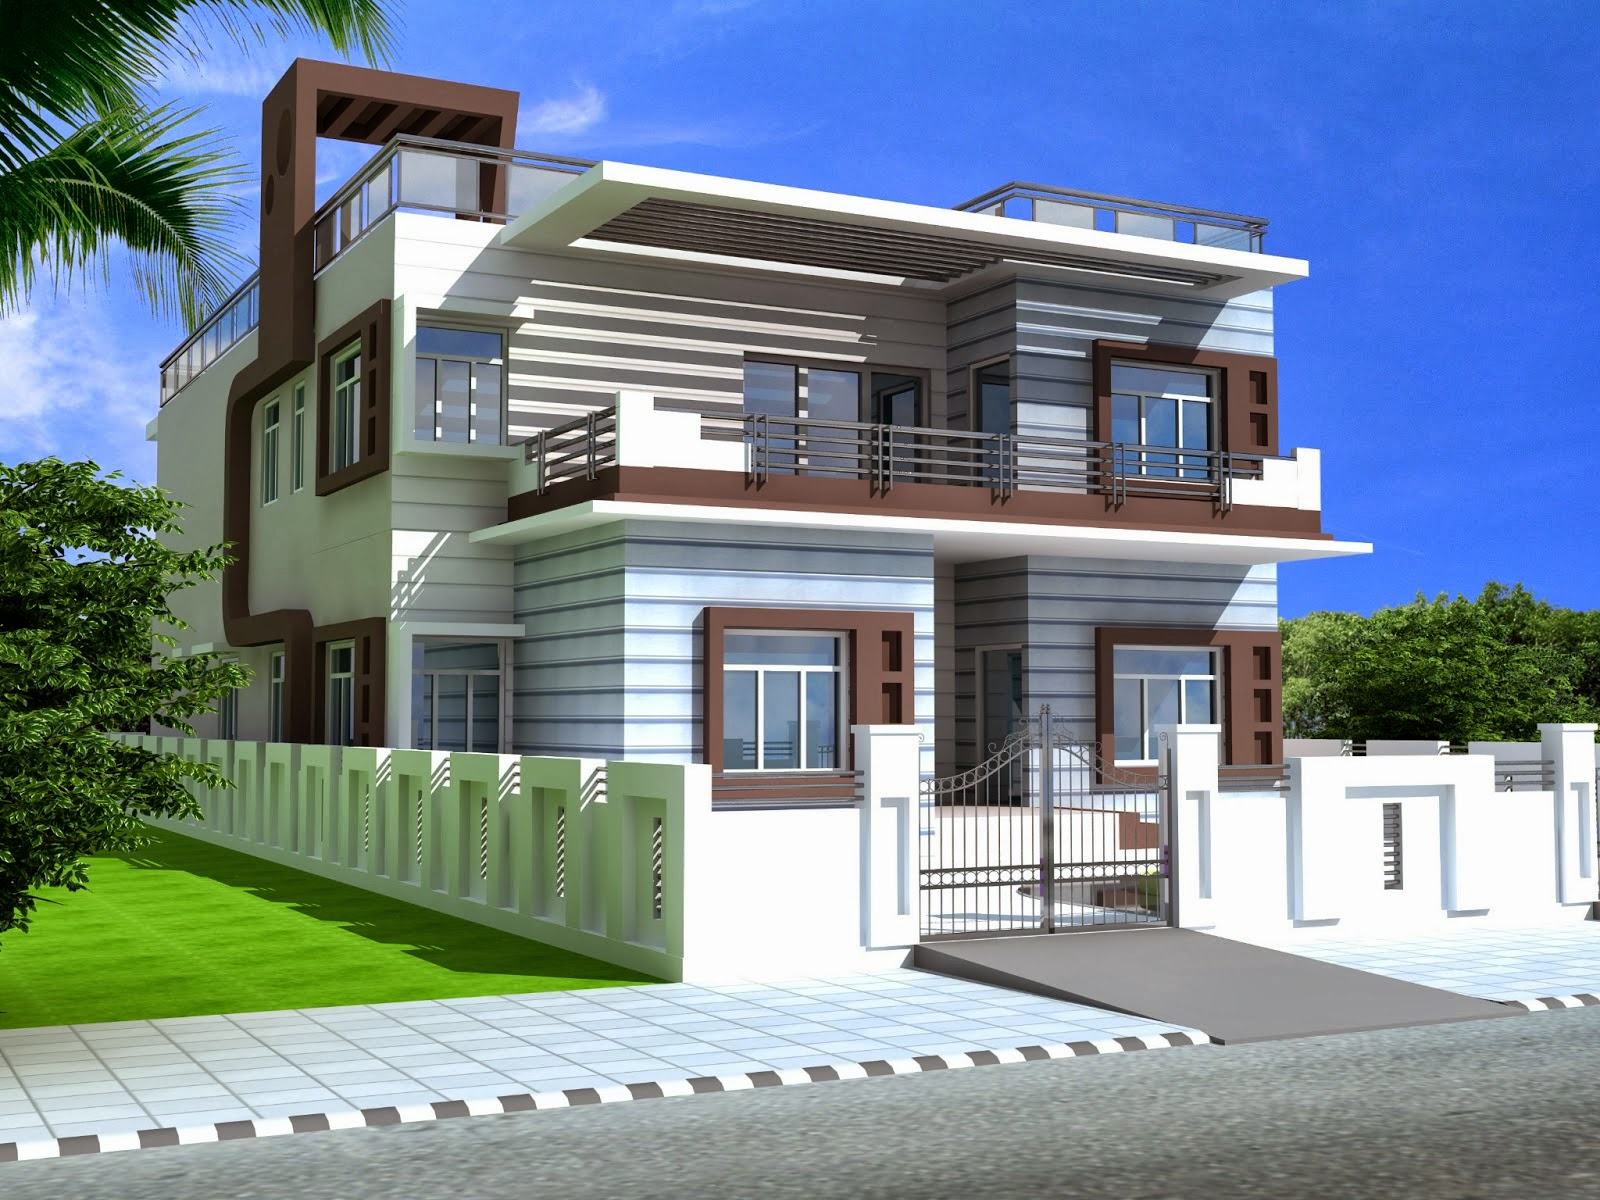 Foundation dezin decor duplex homes 3ds max work for Duplex ideas